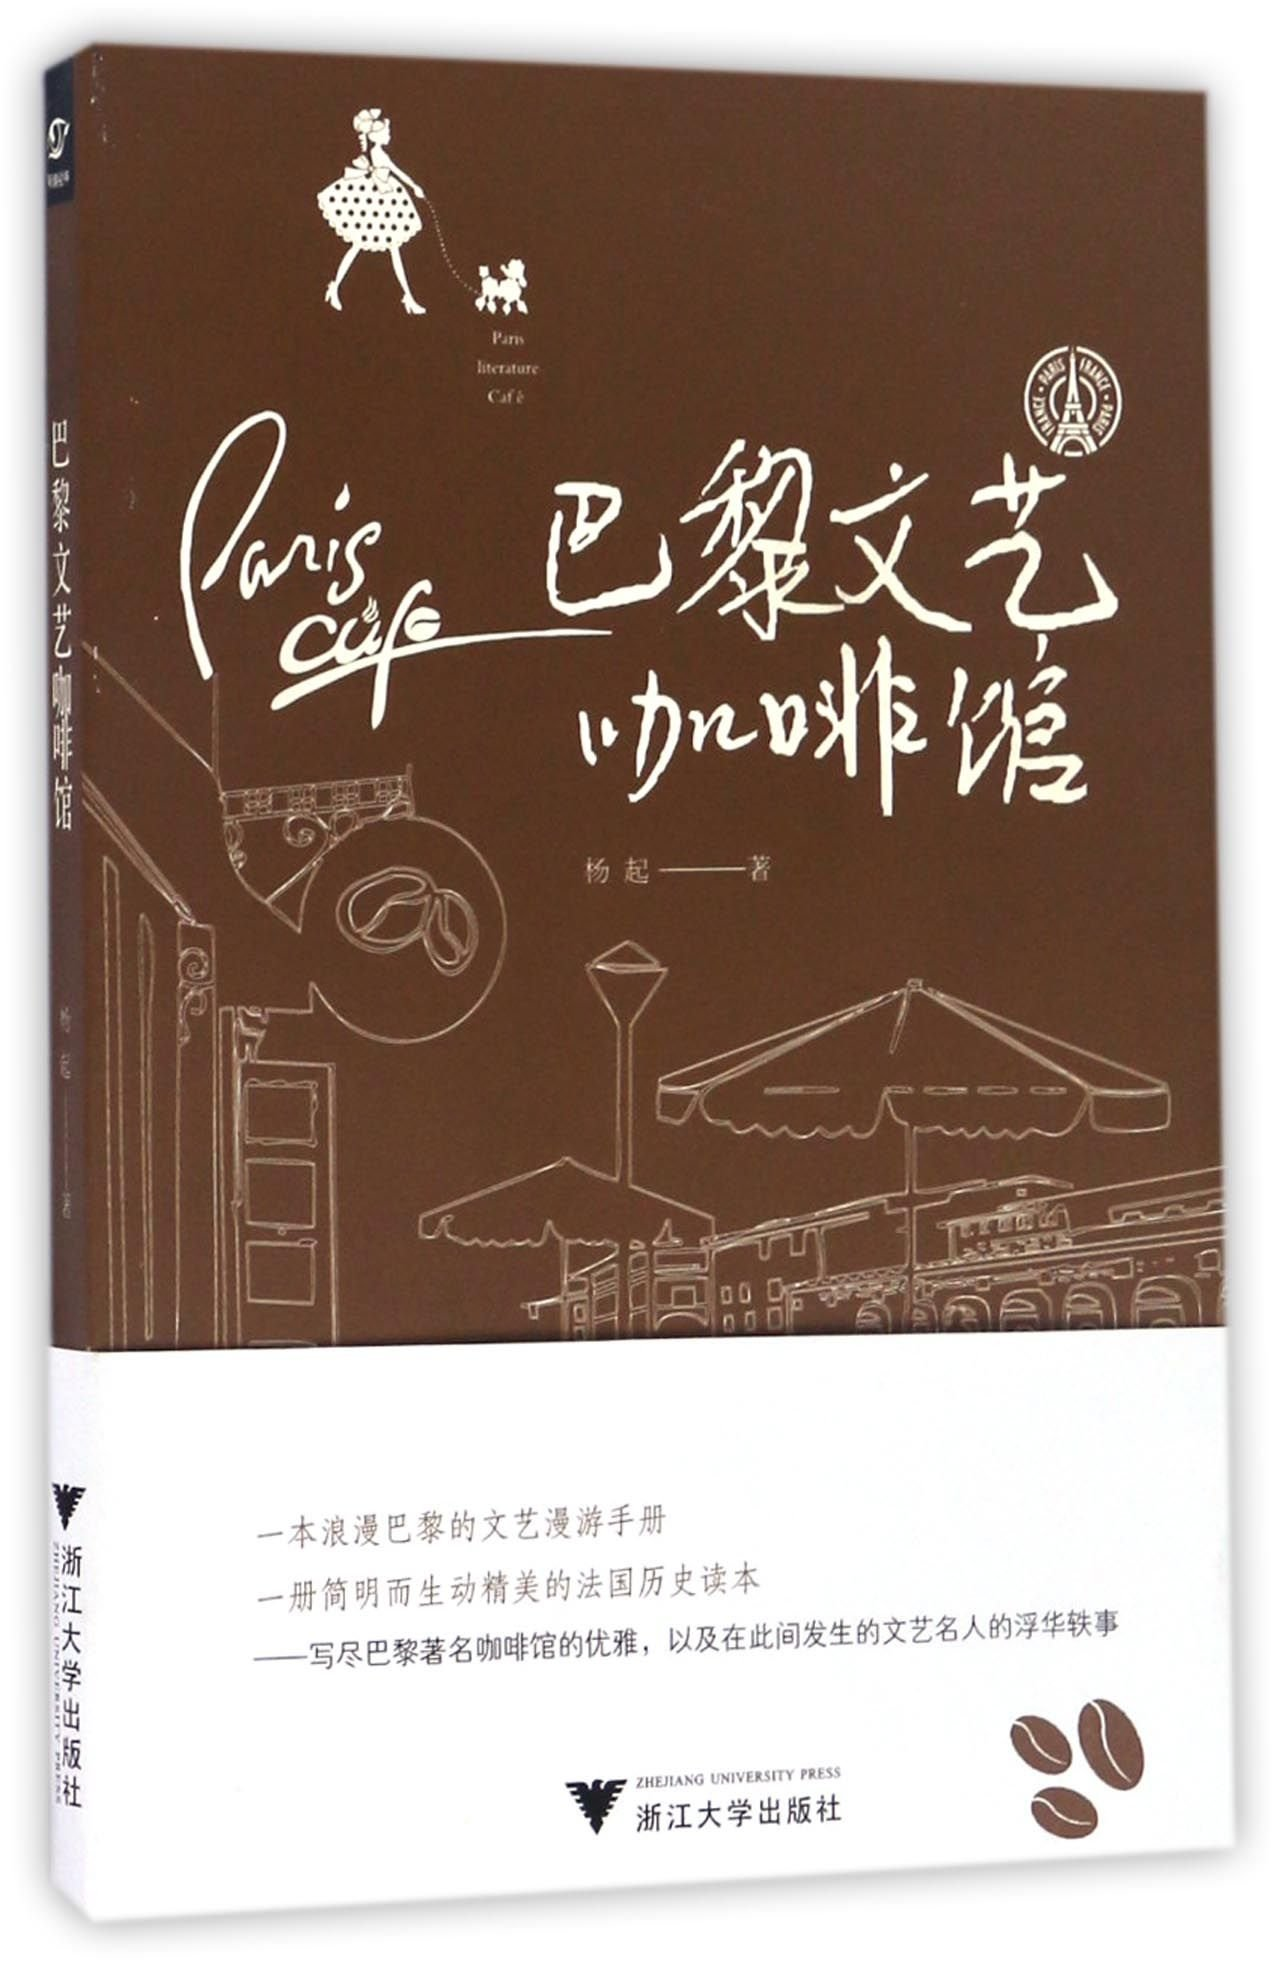 Read Online Paris Café of Culture and Art (Chinese Edition) PDF